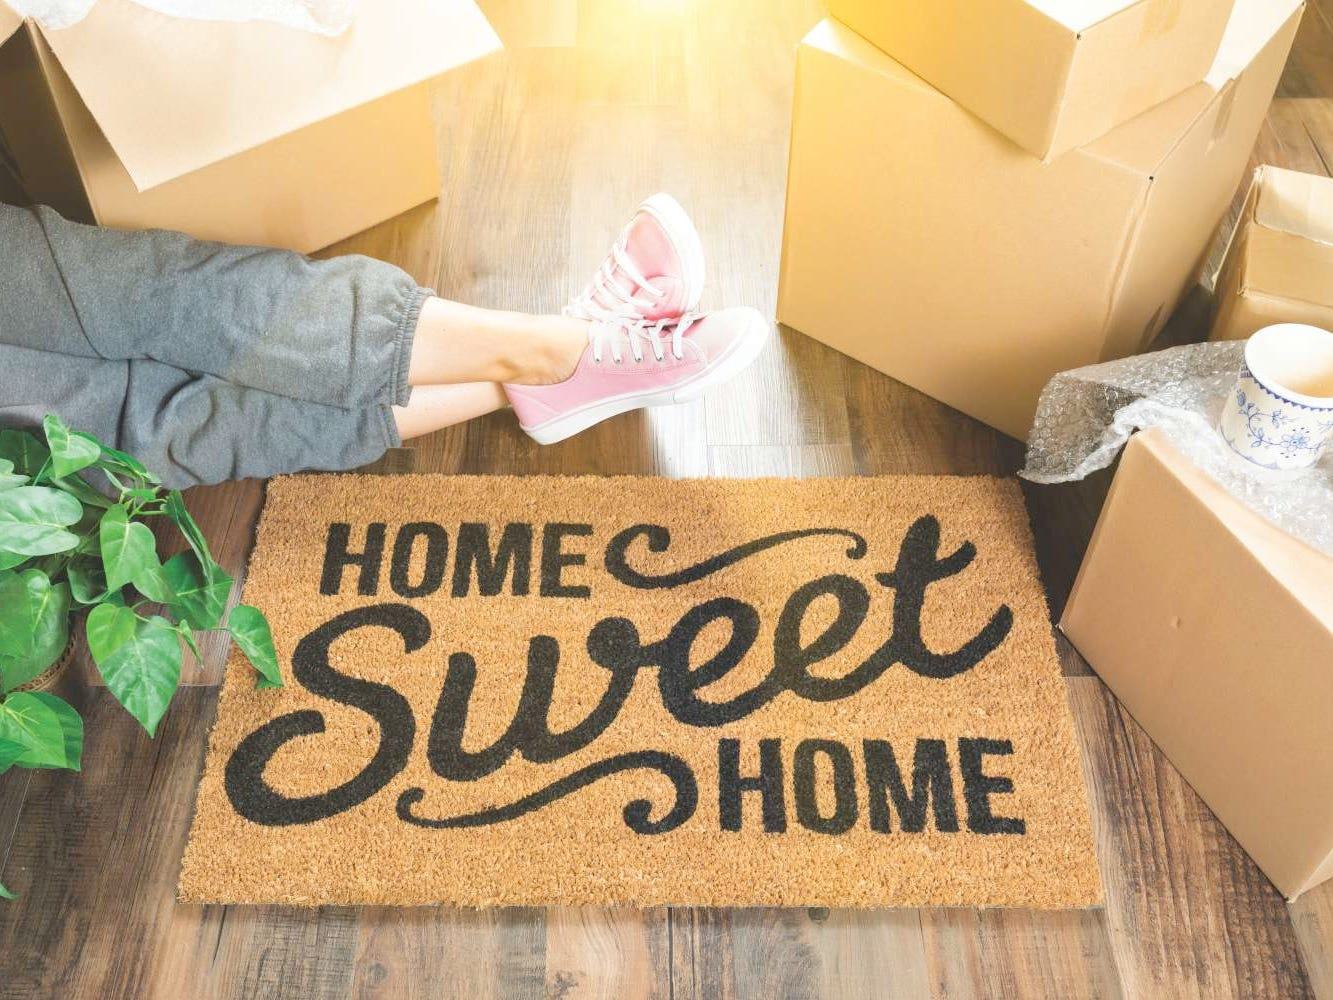 Bergen County real estate agents share advice on what prospective homeowners should do when looking for the home of their dreams.